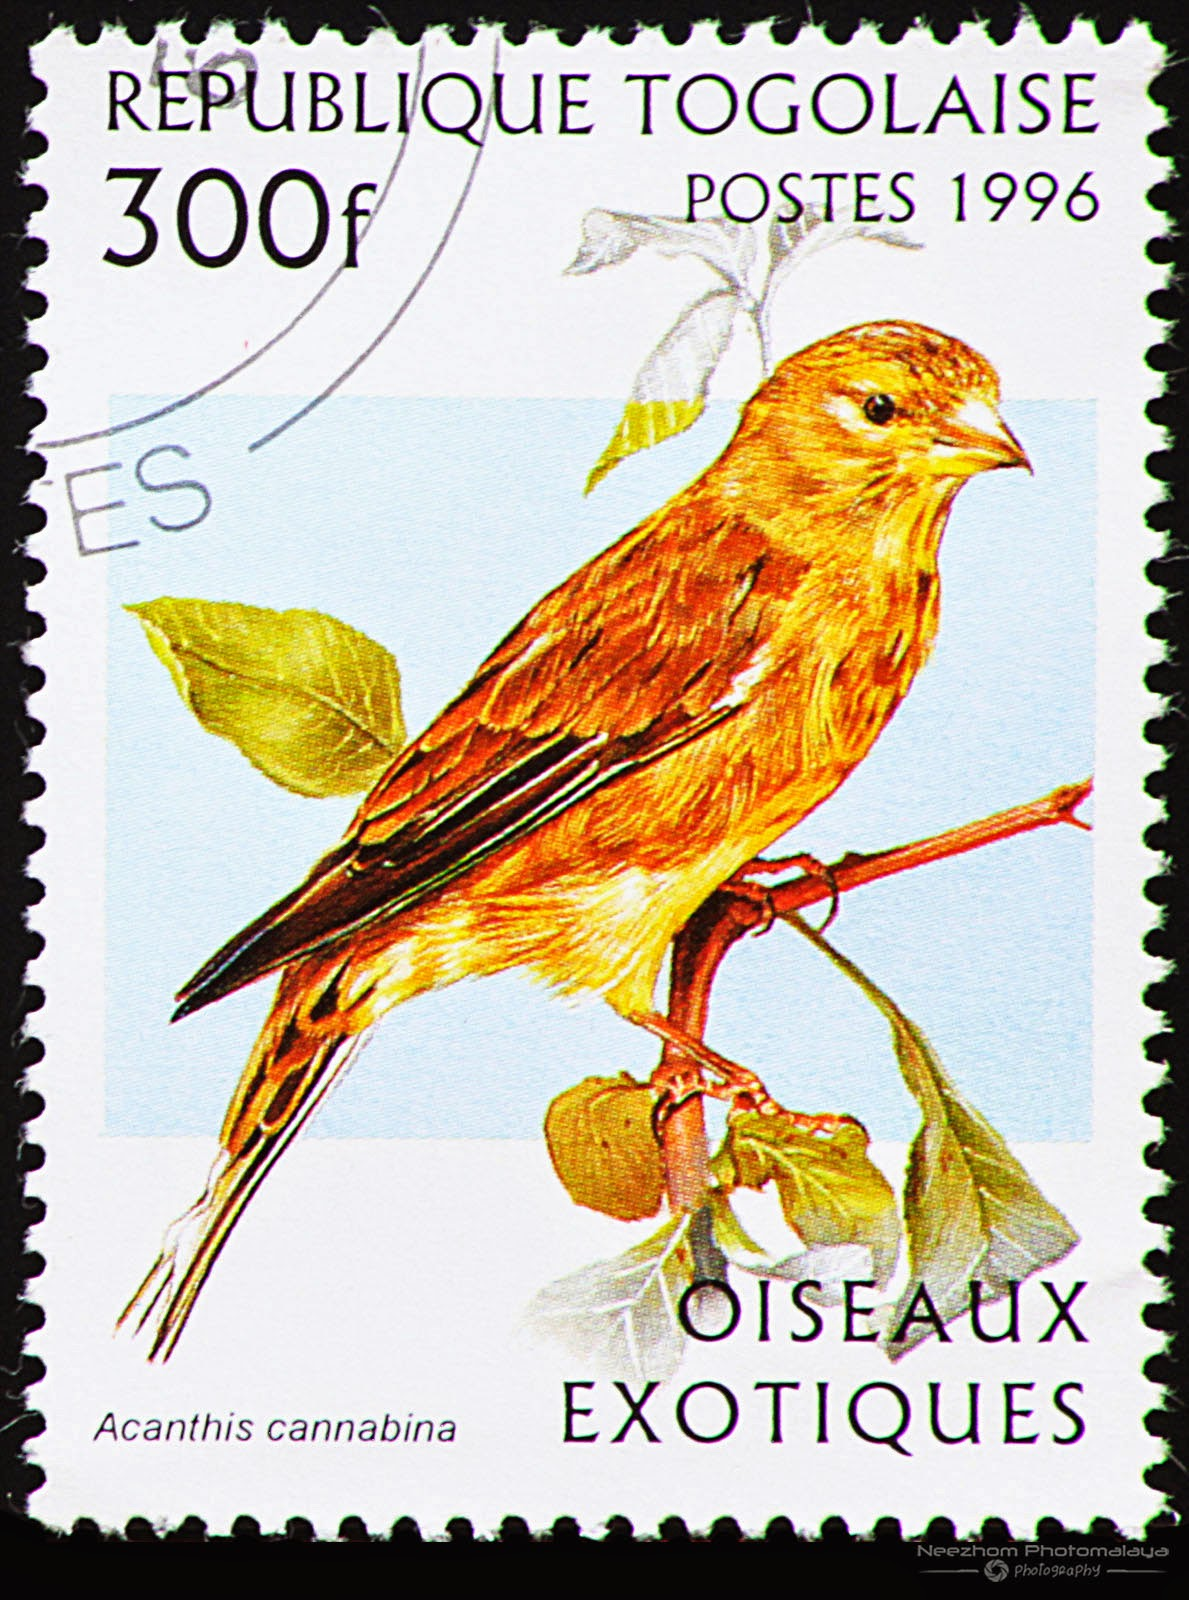 Togo 1996 Exotic Birds stamp - Linnet (Acanthis cannabina) 300 f